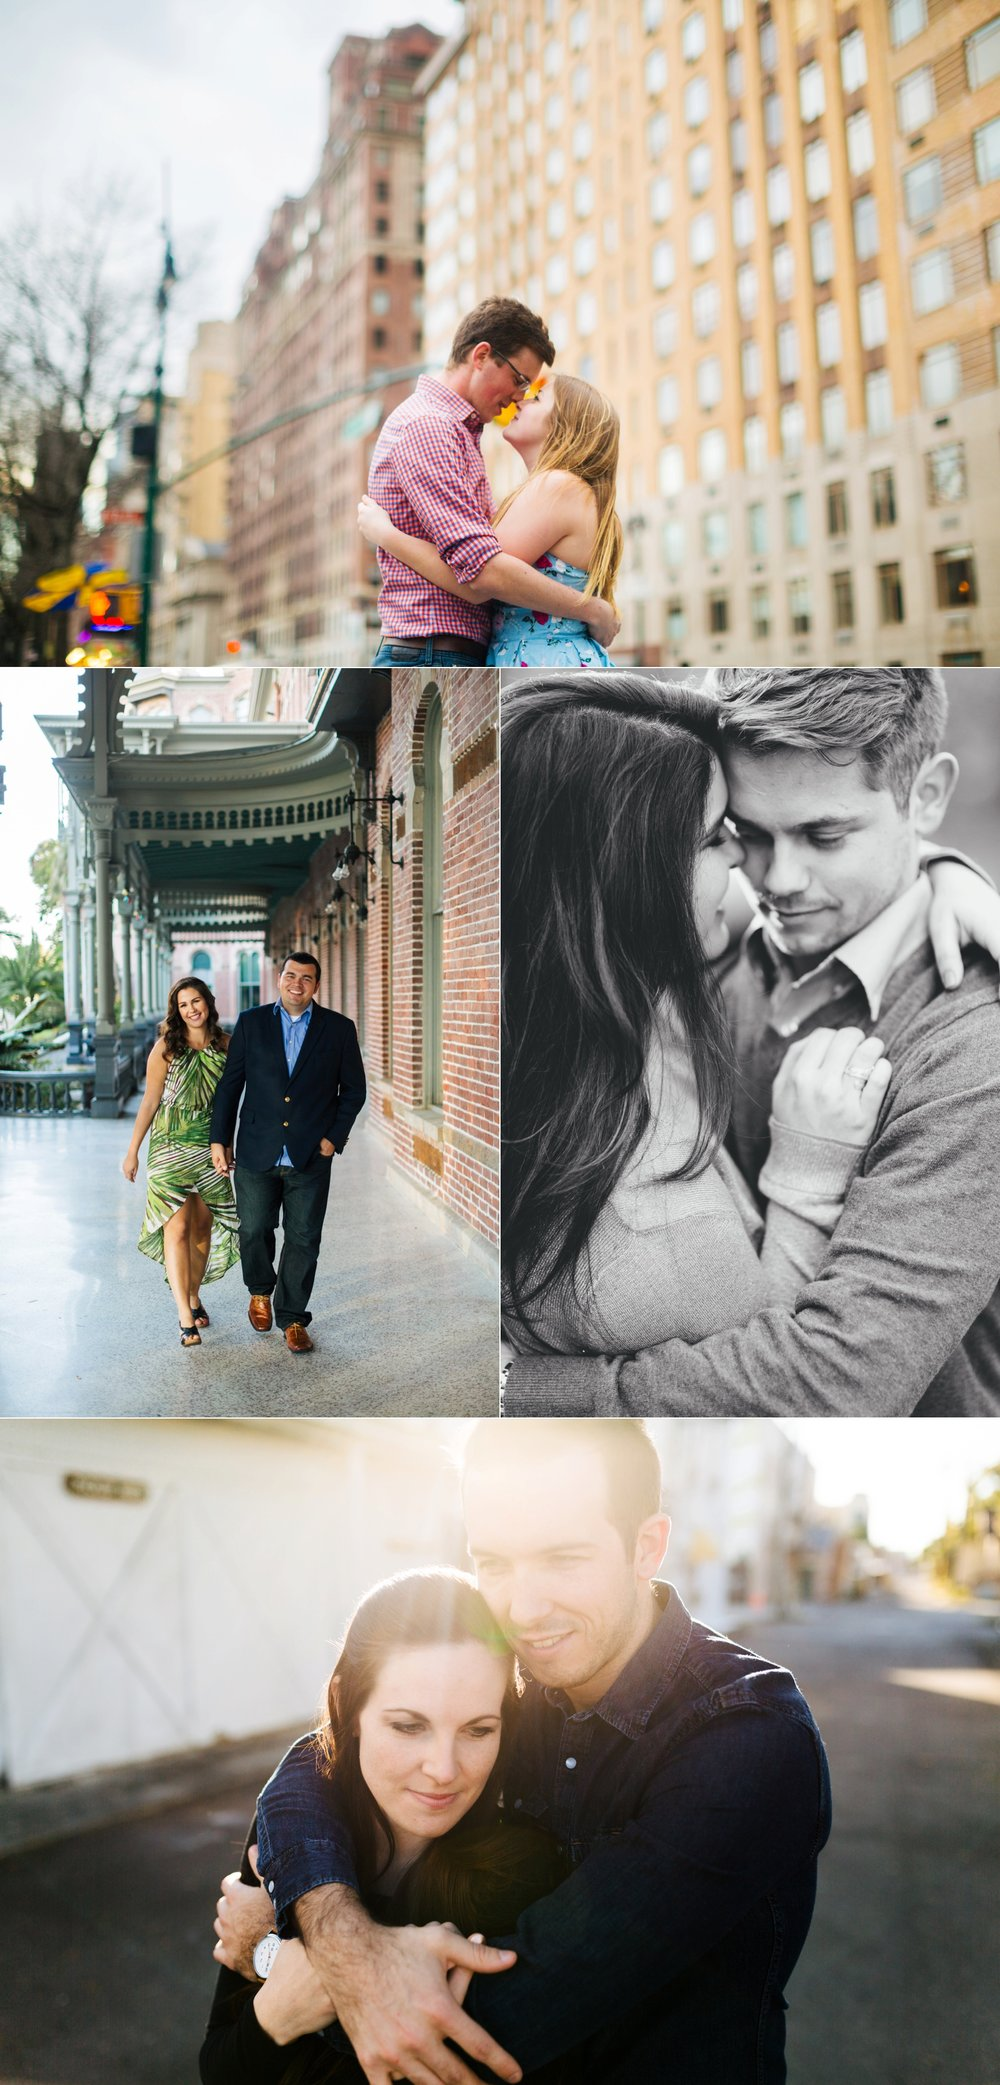 Jake & Katie Photography Best of Couples 2016-020.jpg